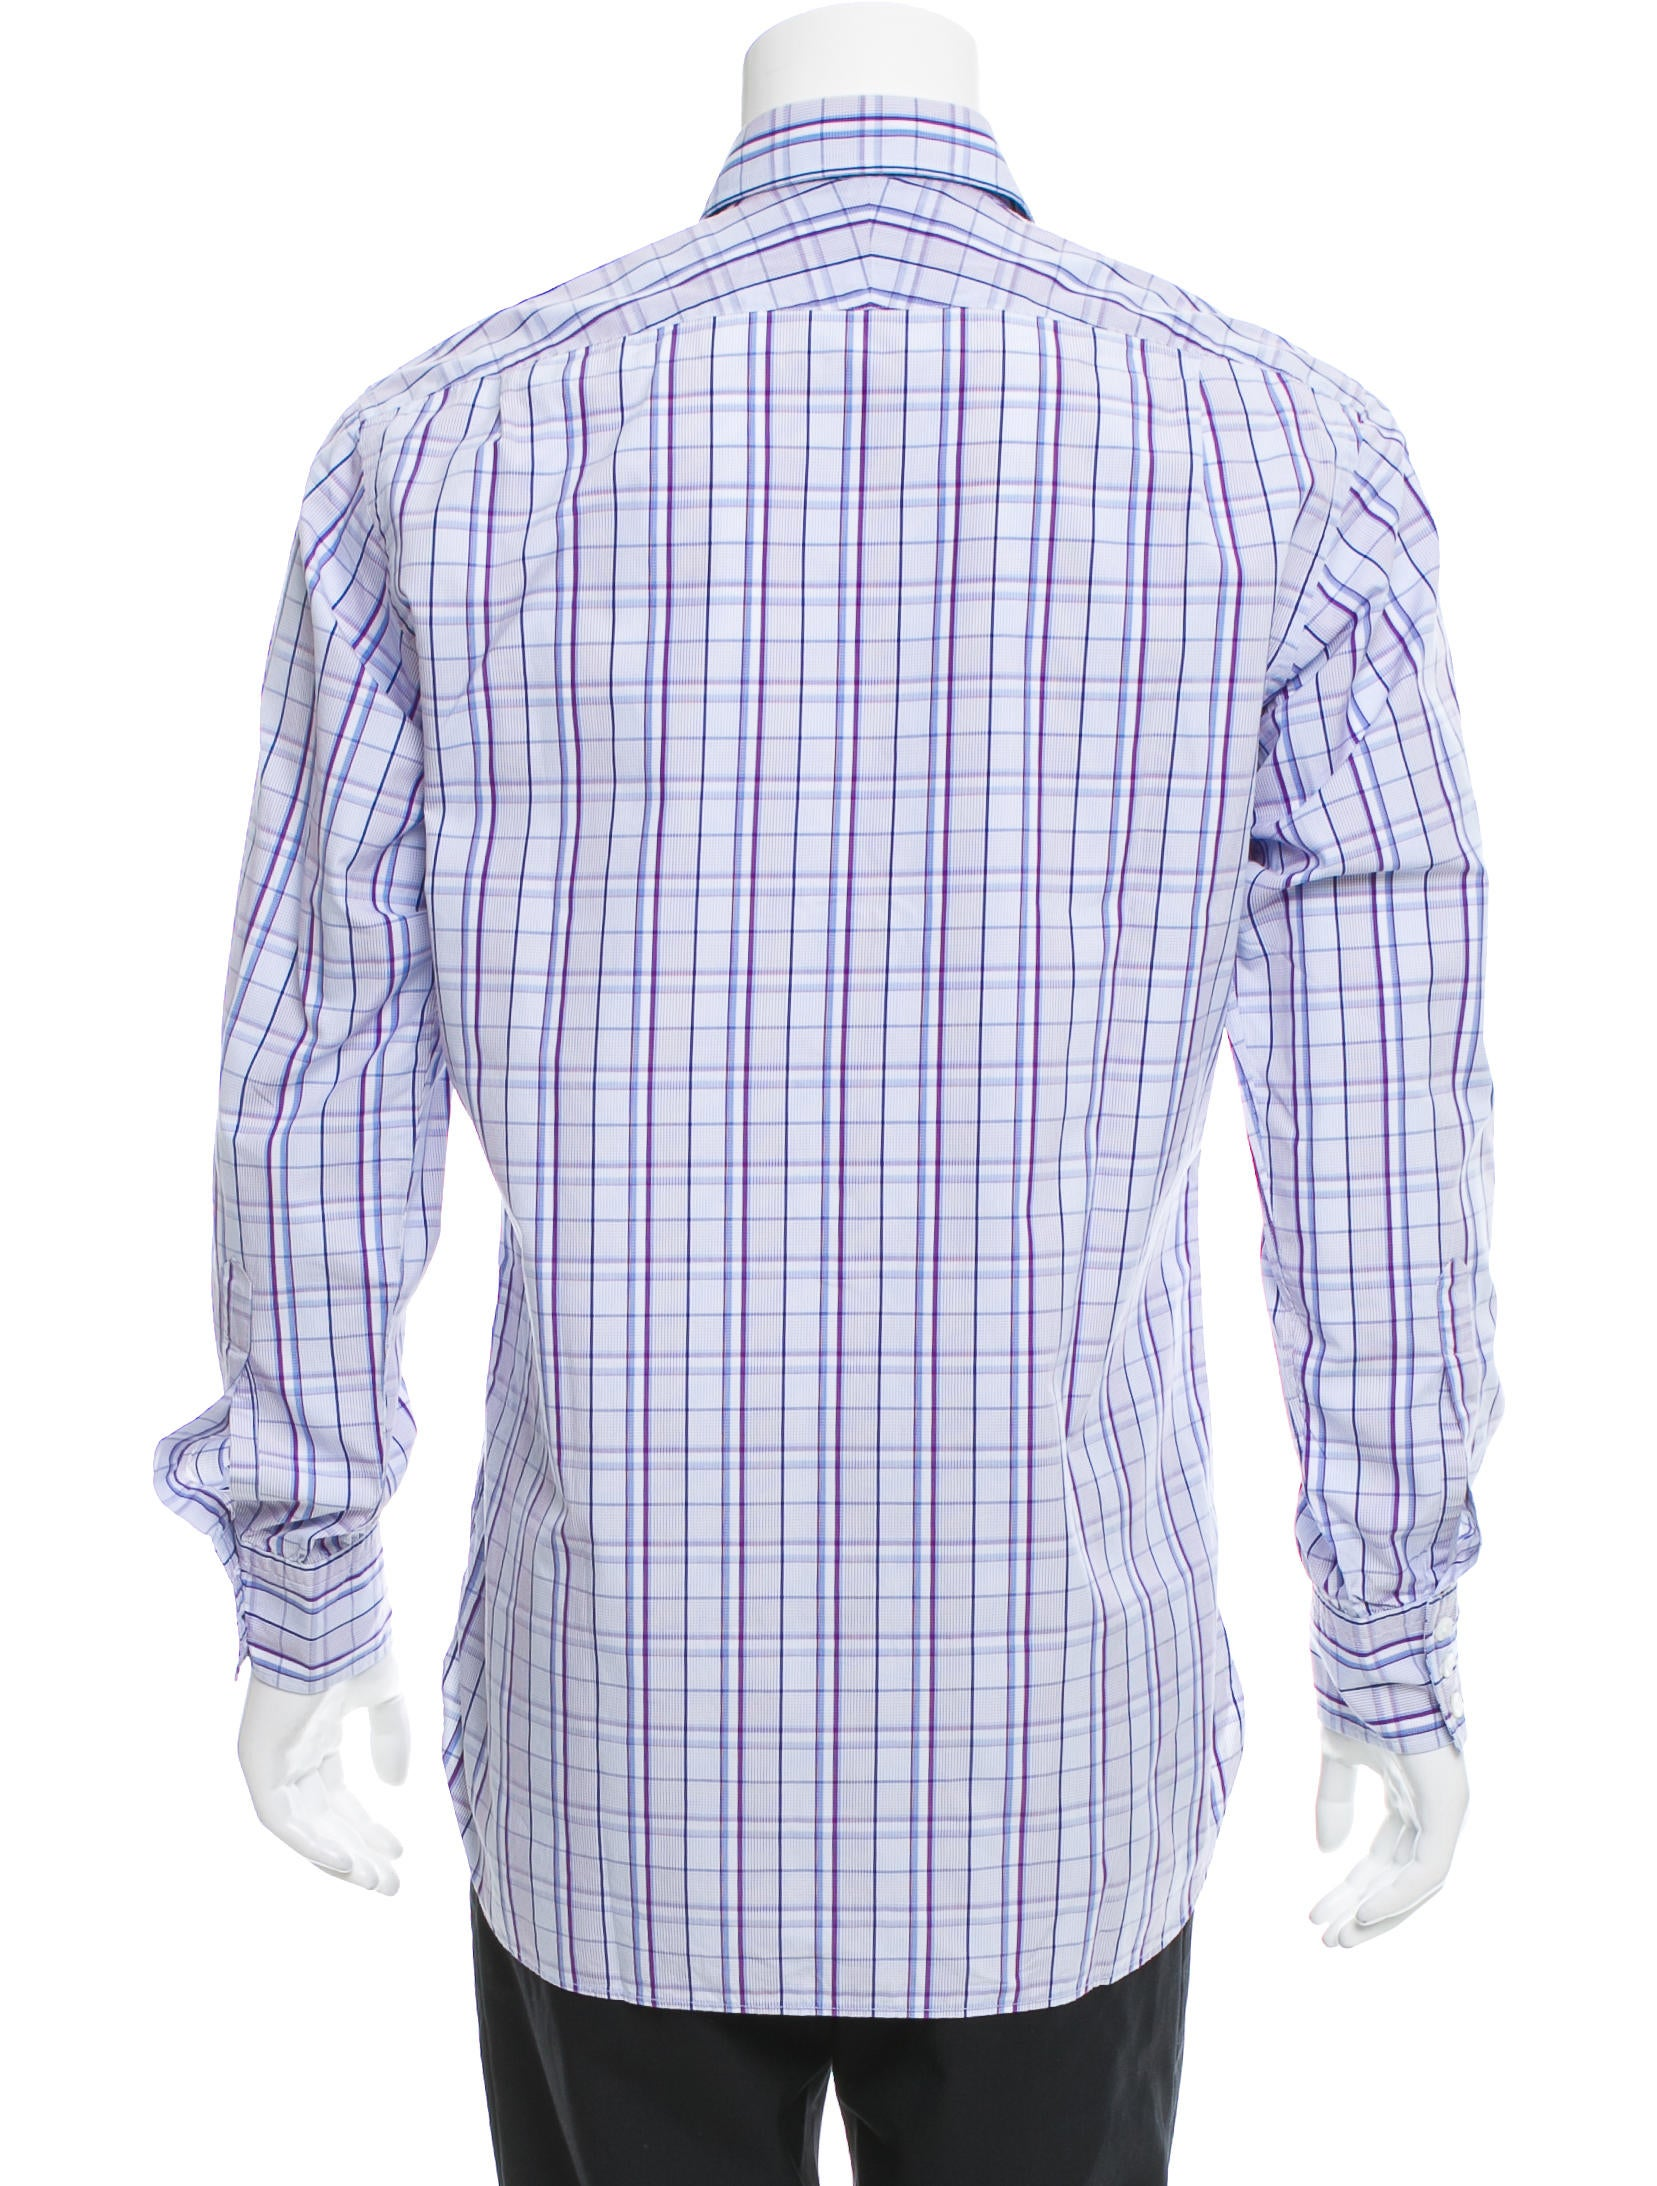 Turnbull Asser Plaid Button Up Shirt Clothing